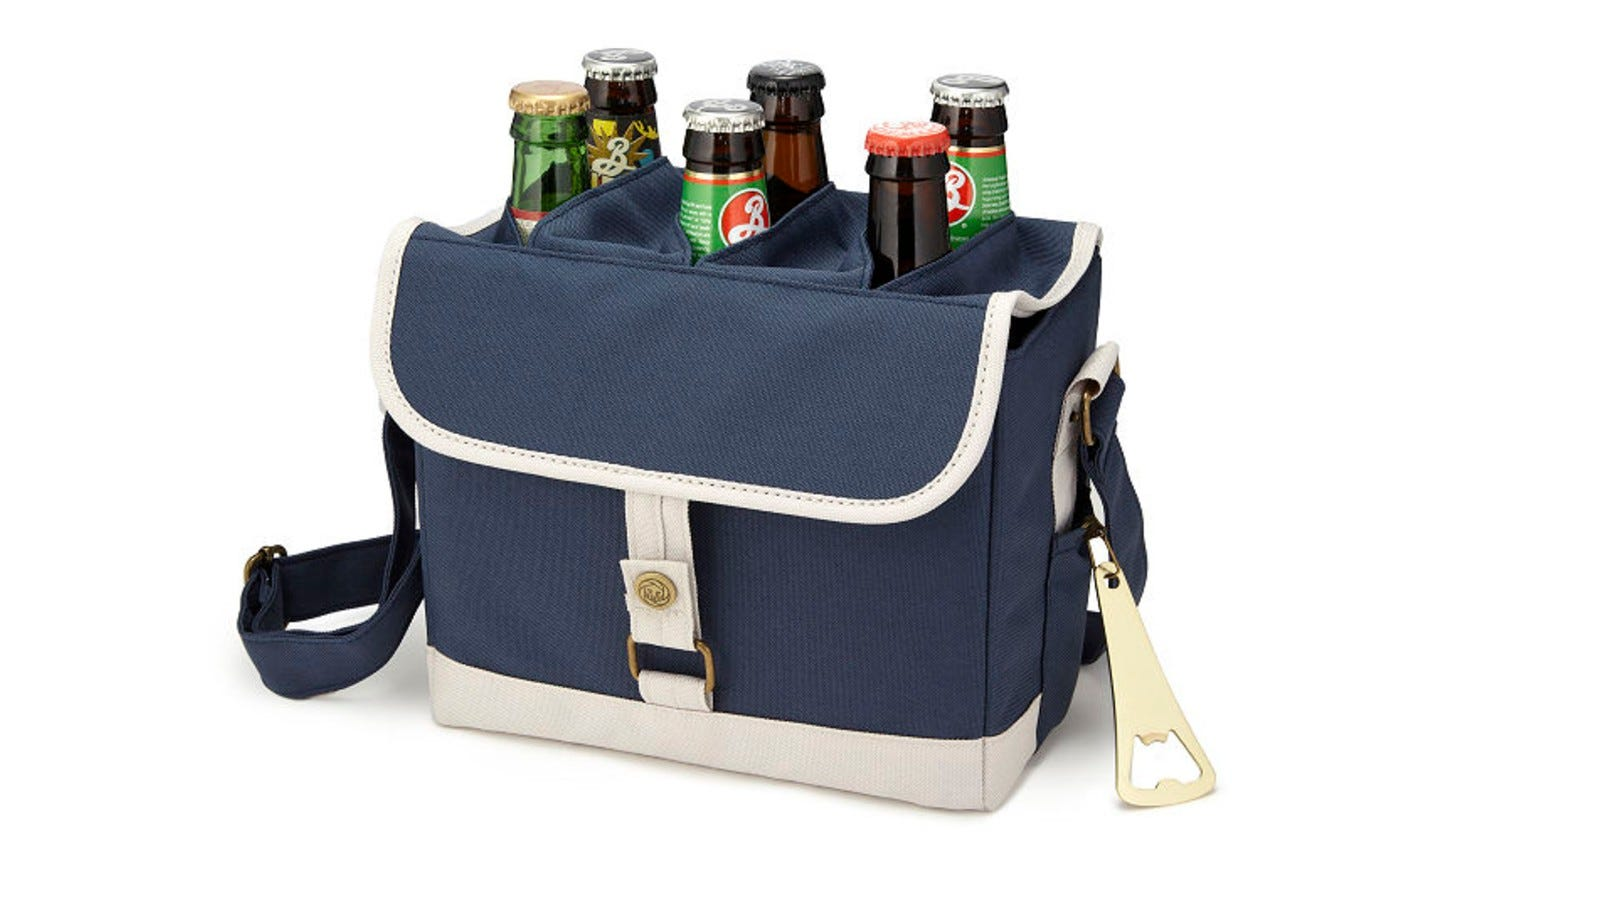 Six bottles of beer sticking out of Uncommon Goods' Brew Caddy.